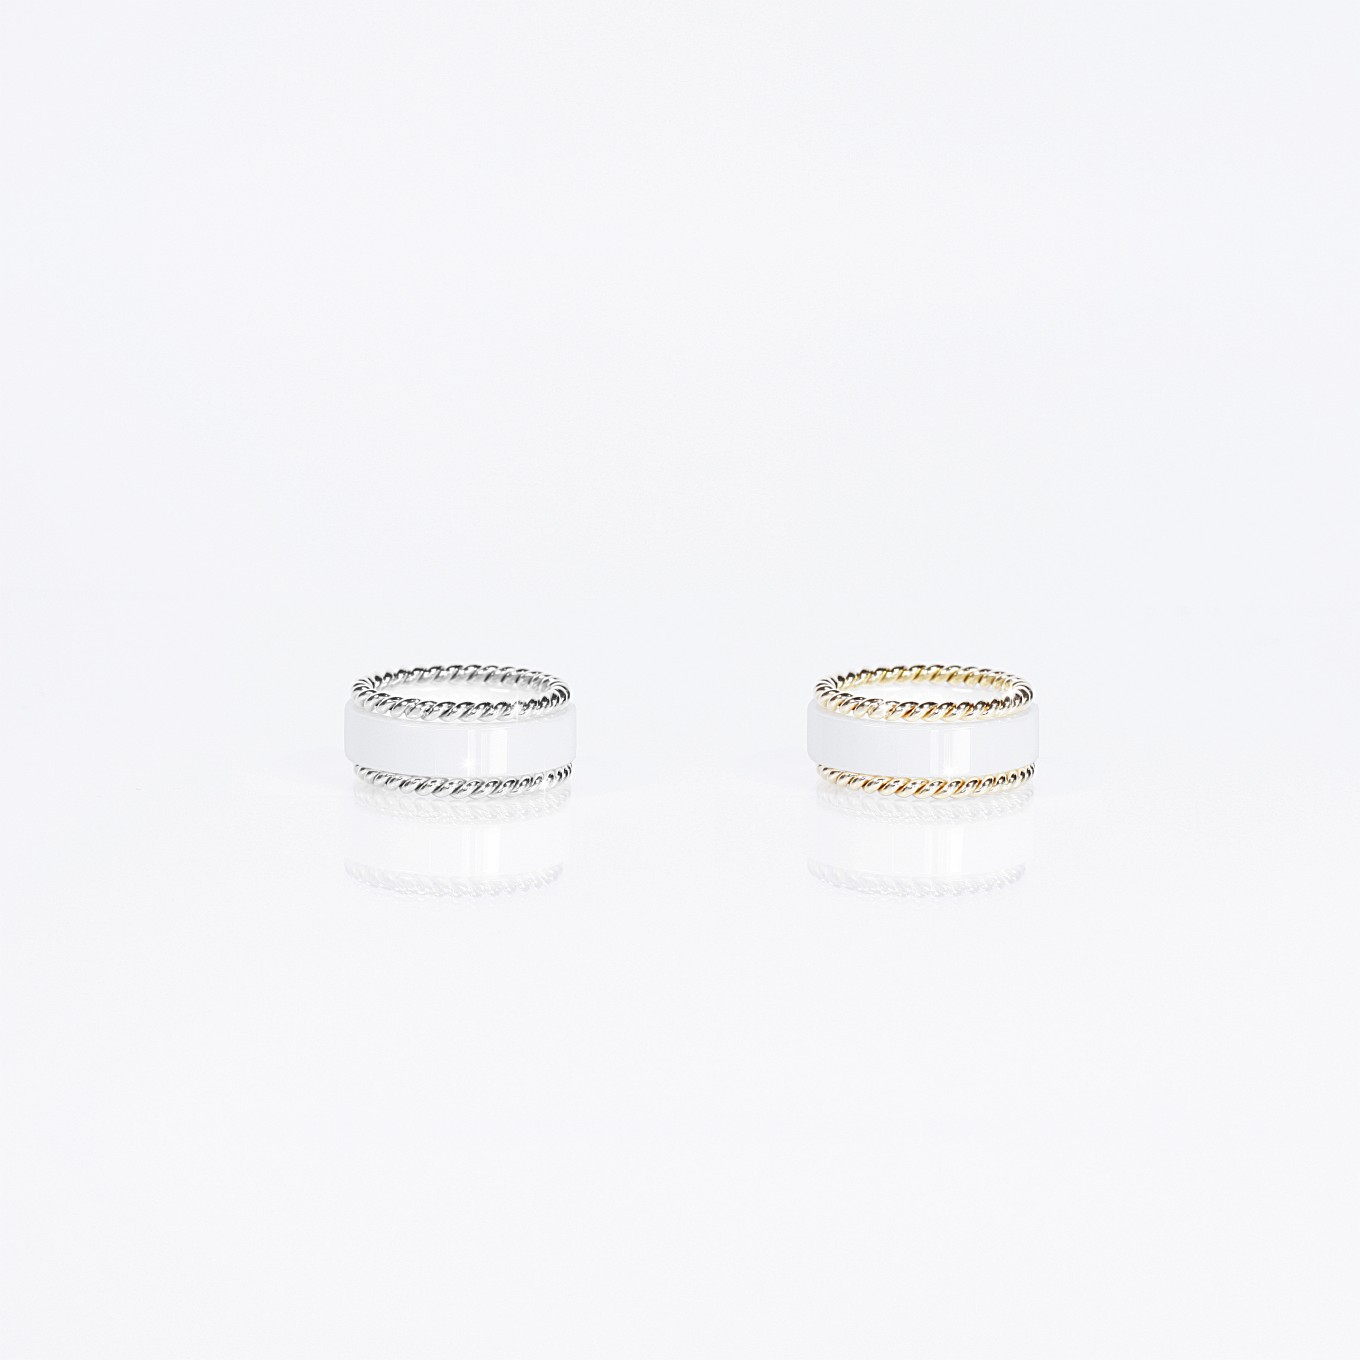 WHITE CERAMIC BANDS & GOLD BRAIDED BANDS